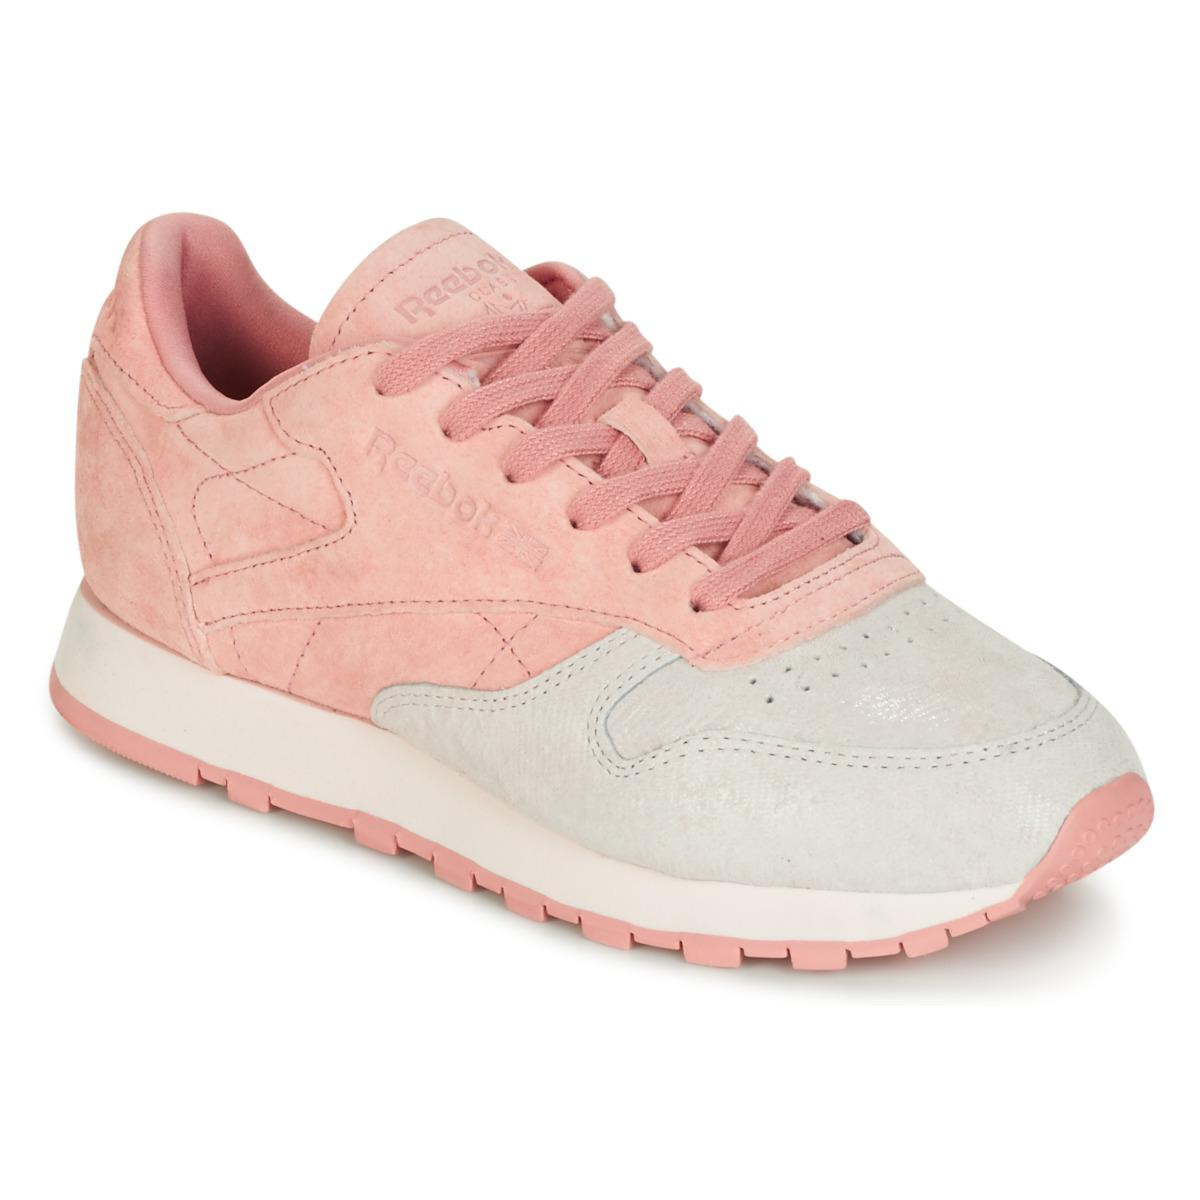 32ce572158de8c Reebok Classic Leather Nbk Shoes (trainers) in Pink - Lyst